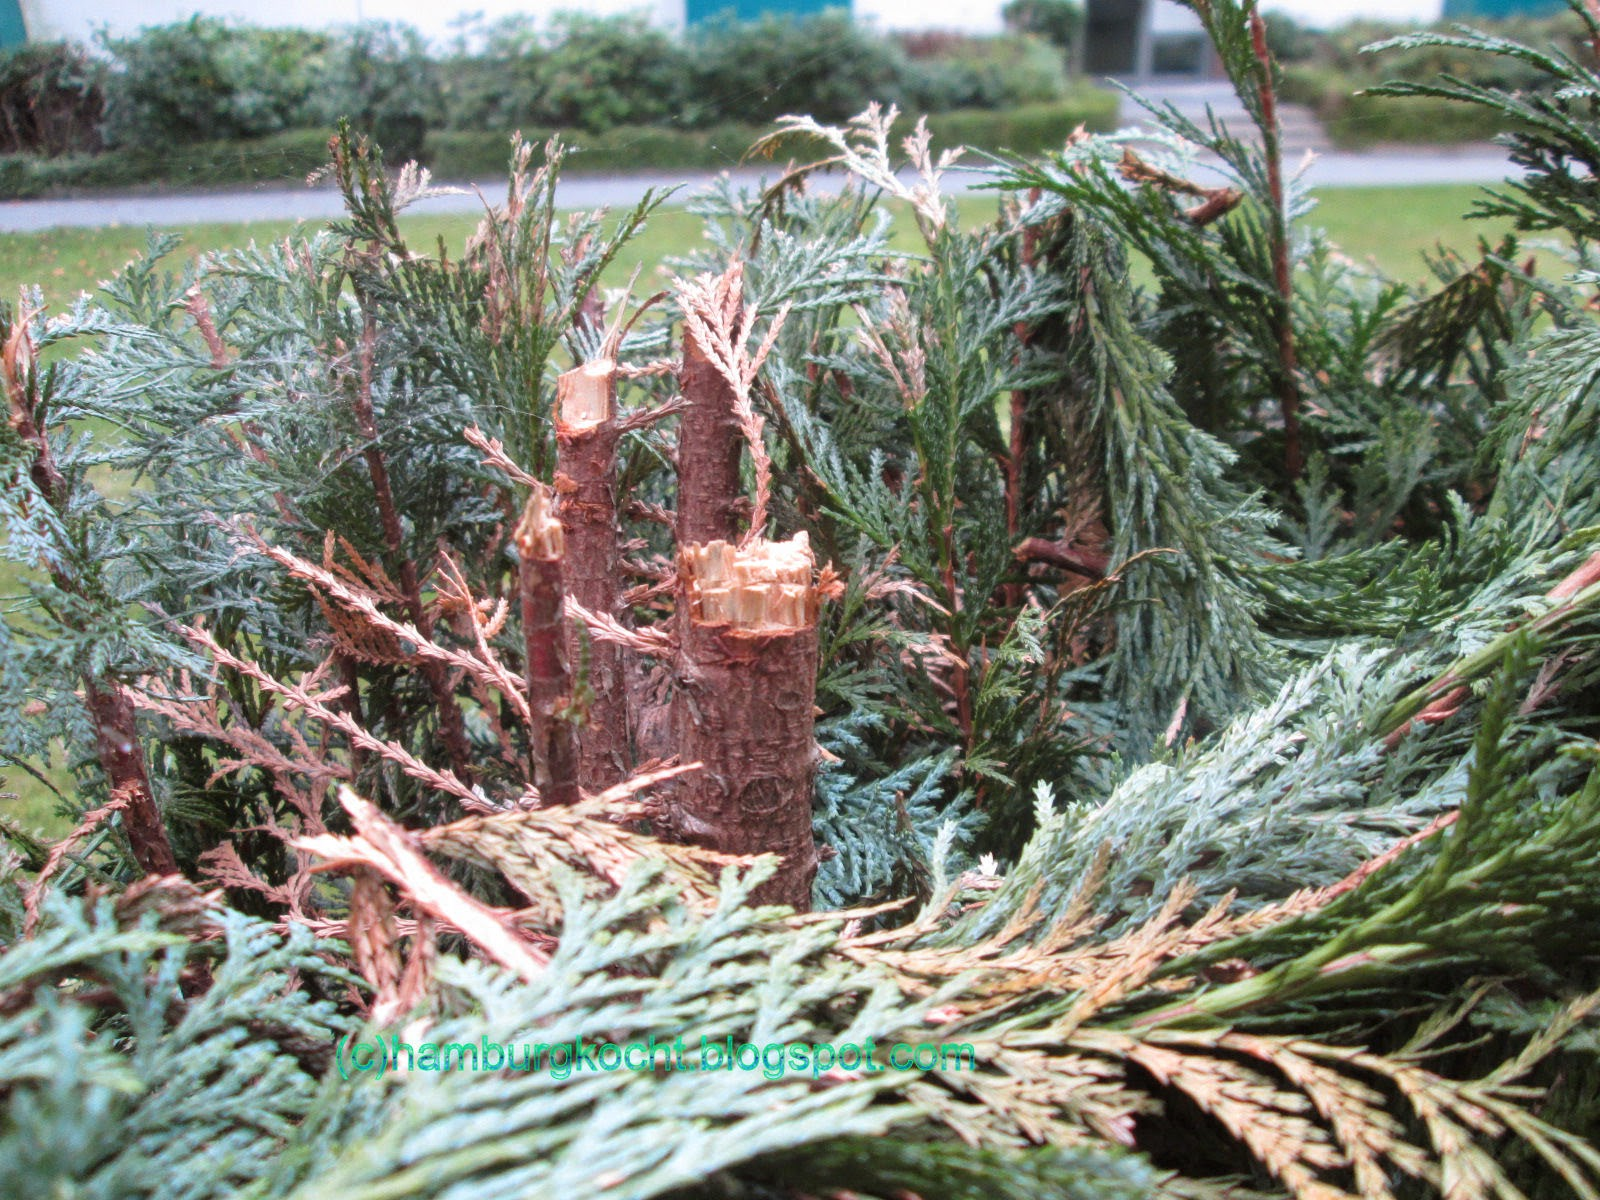 hamburg kocht der garten im august september kahlschlag. Black Bedroom Furniture Sets. Home Design Ideas